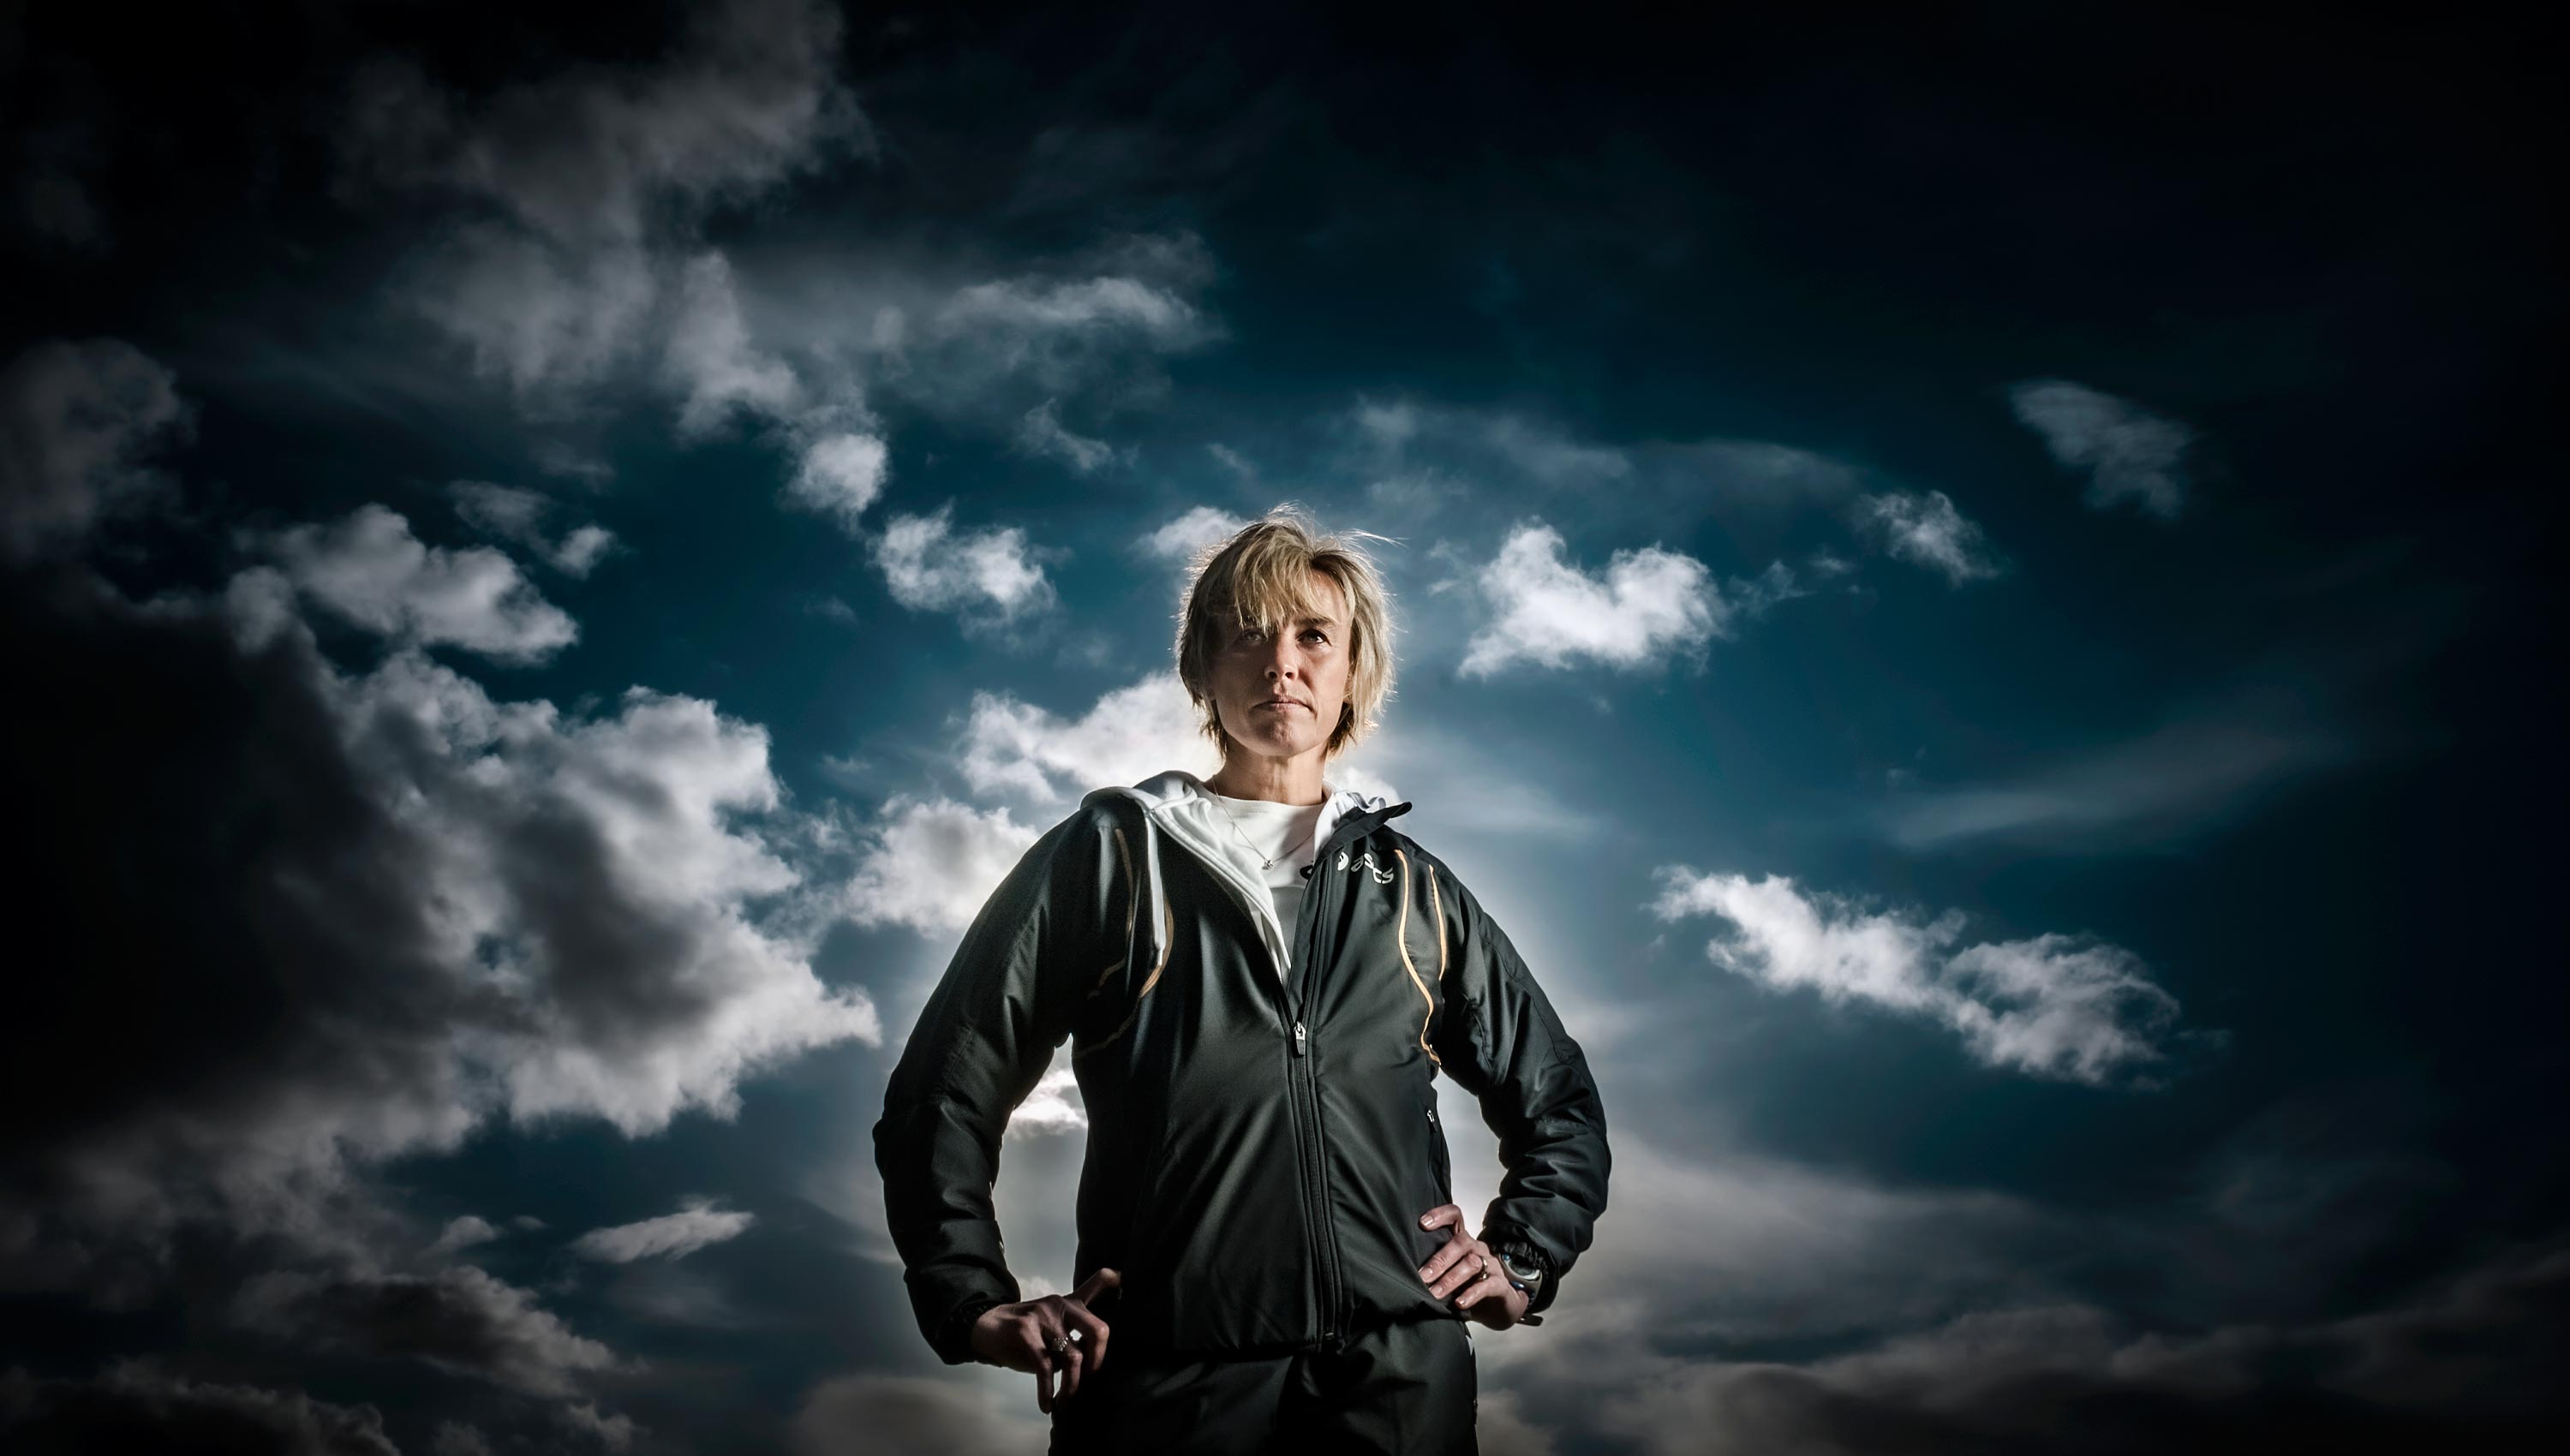 Scottish Champion Athlete Liz McColgan